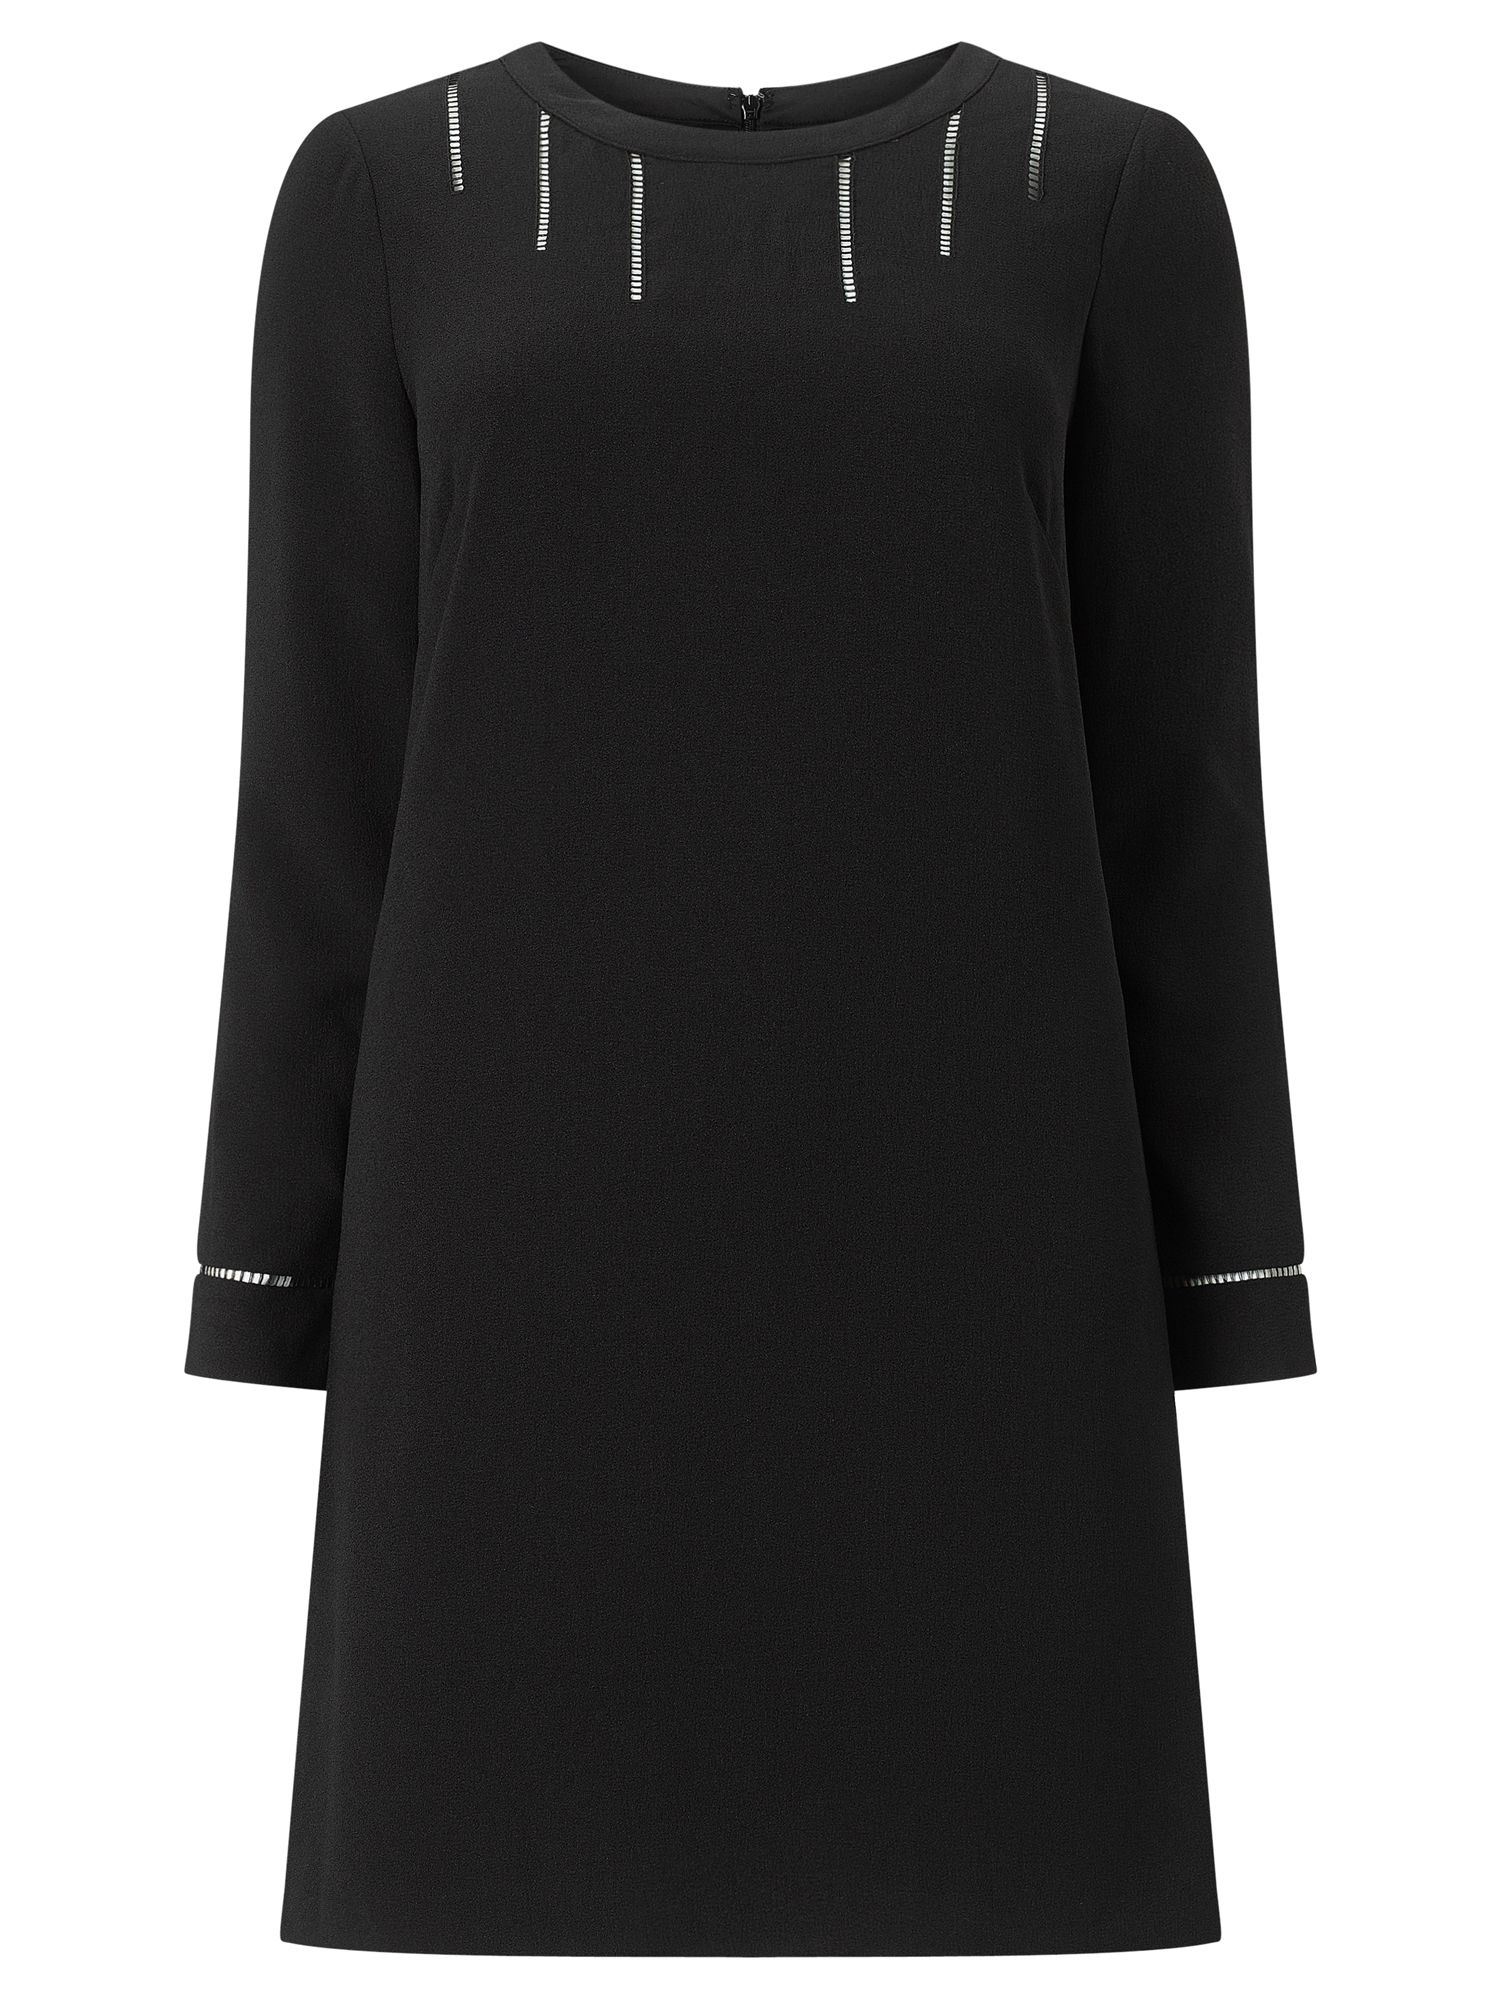 Adrianna Papell Long Sleeve Shift Dress, Black